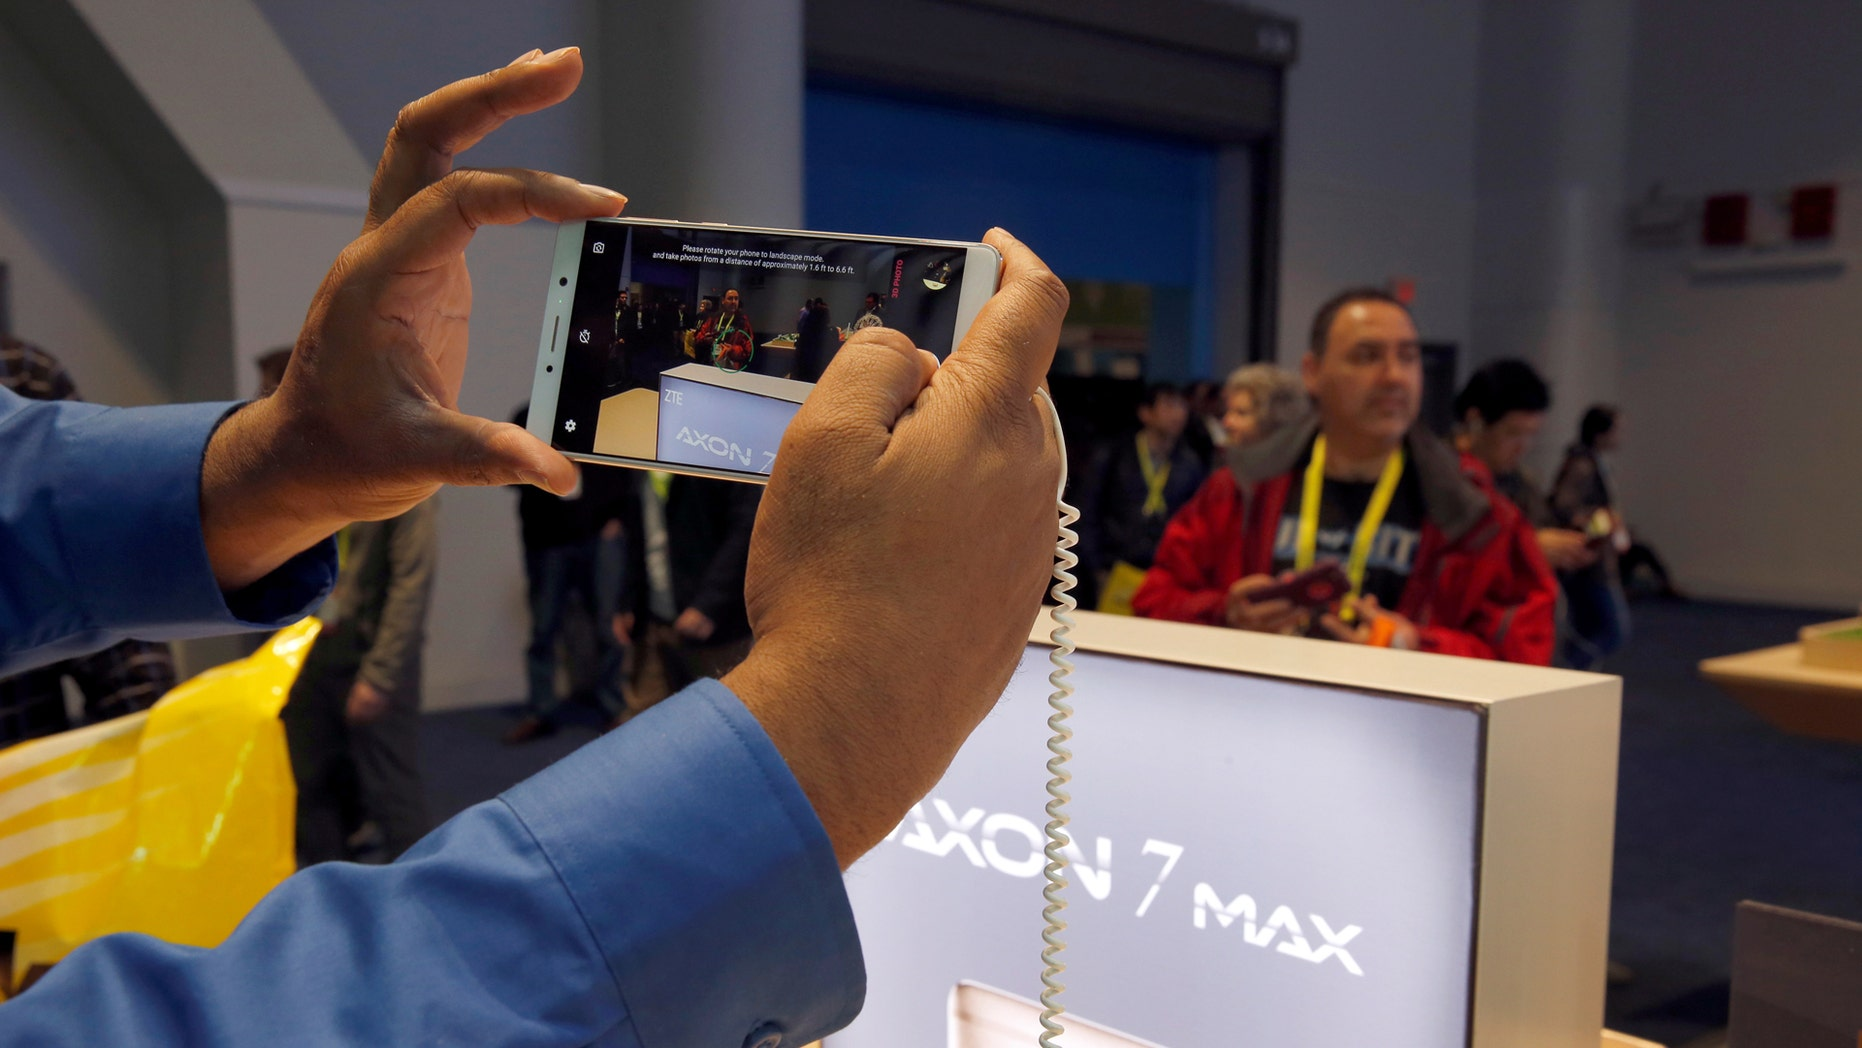 File photo: A man takes a photo with an Axon 7 Max smartphone with 3D camera at the ZTE booth during the 2017 CES in Las Vegas, Nevada January 6, 2017. (REUTERS/Steve Marcus)